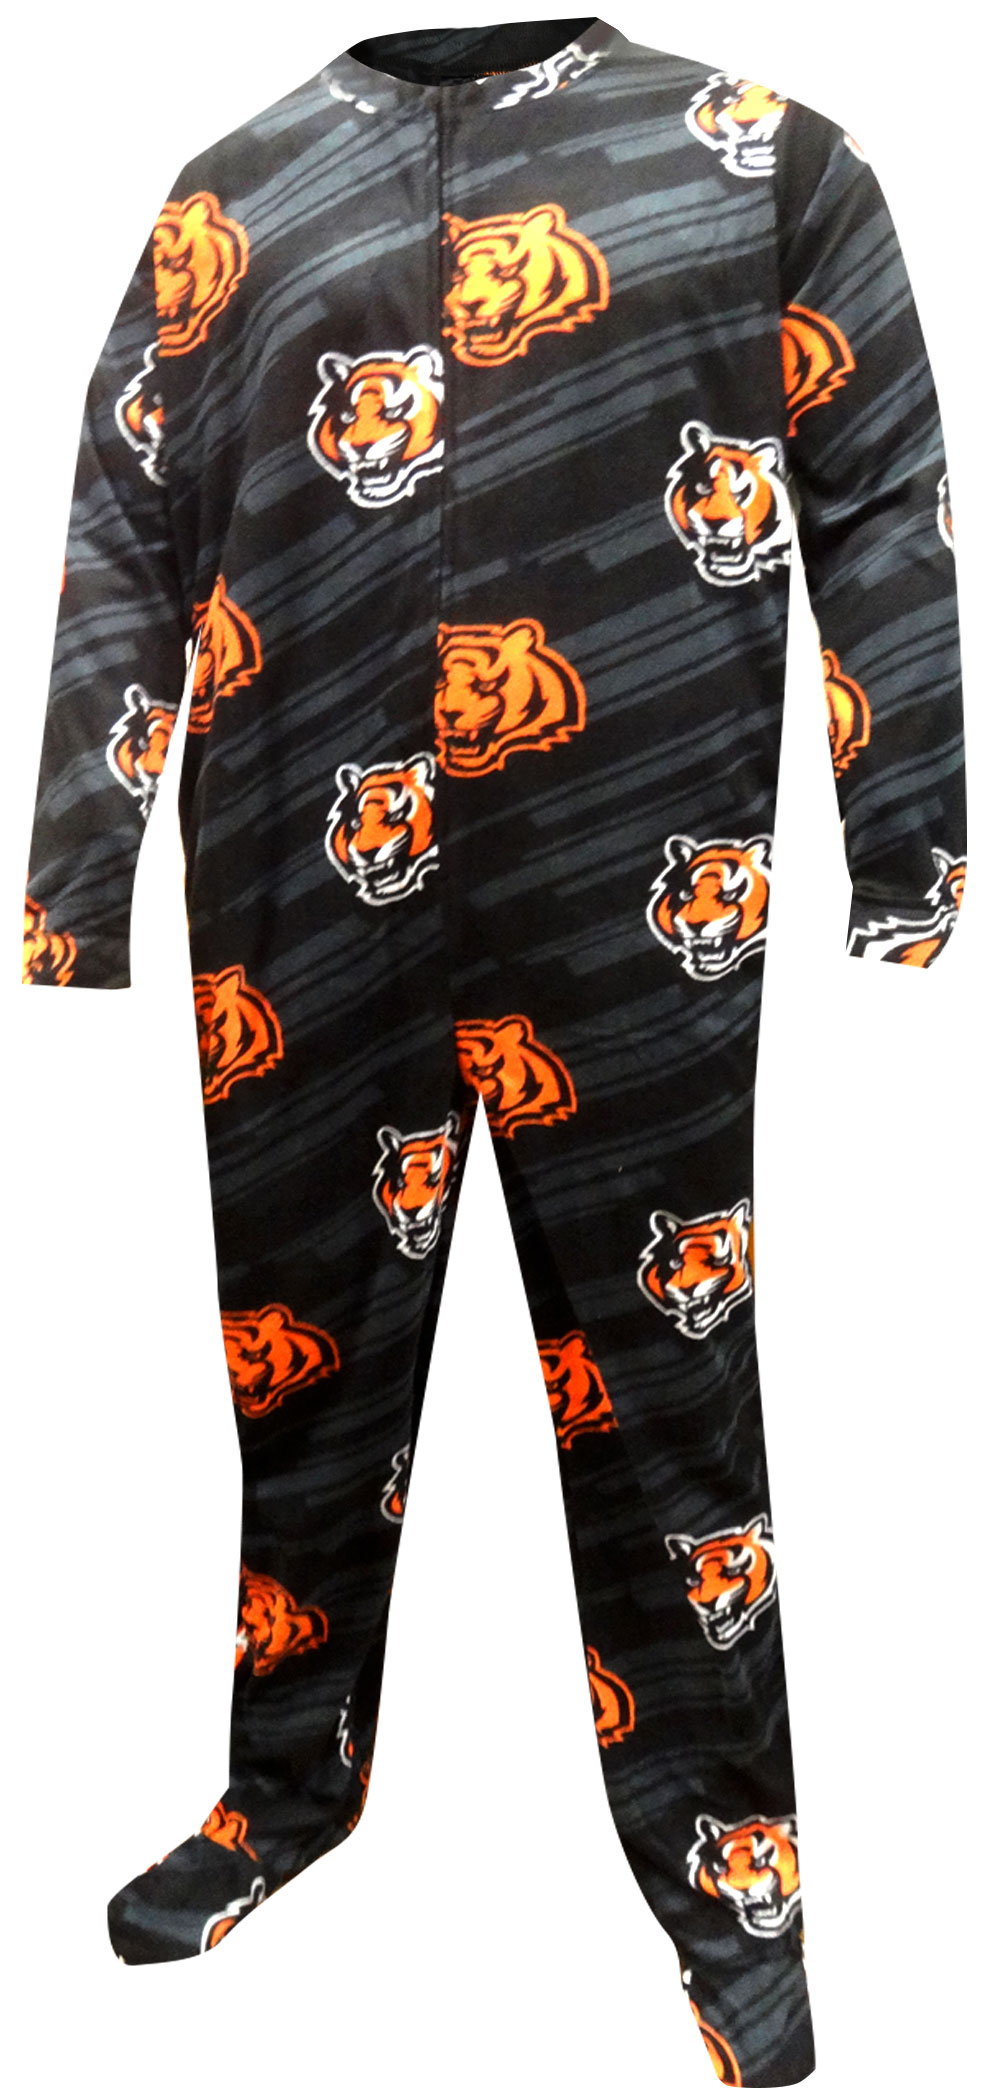 Image of Cincinnati Bengals One Piece Footie Pajama for men